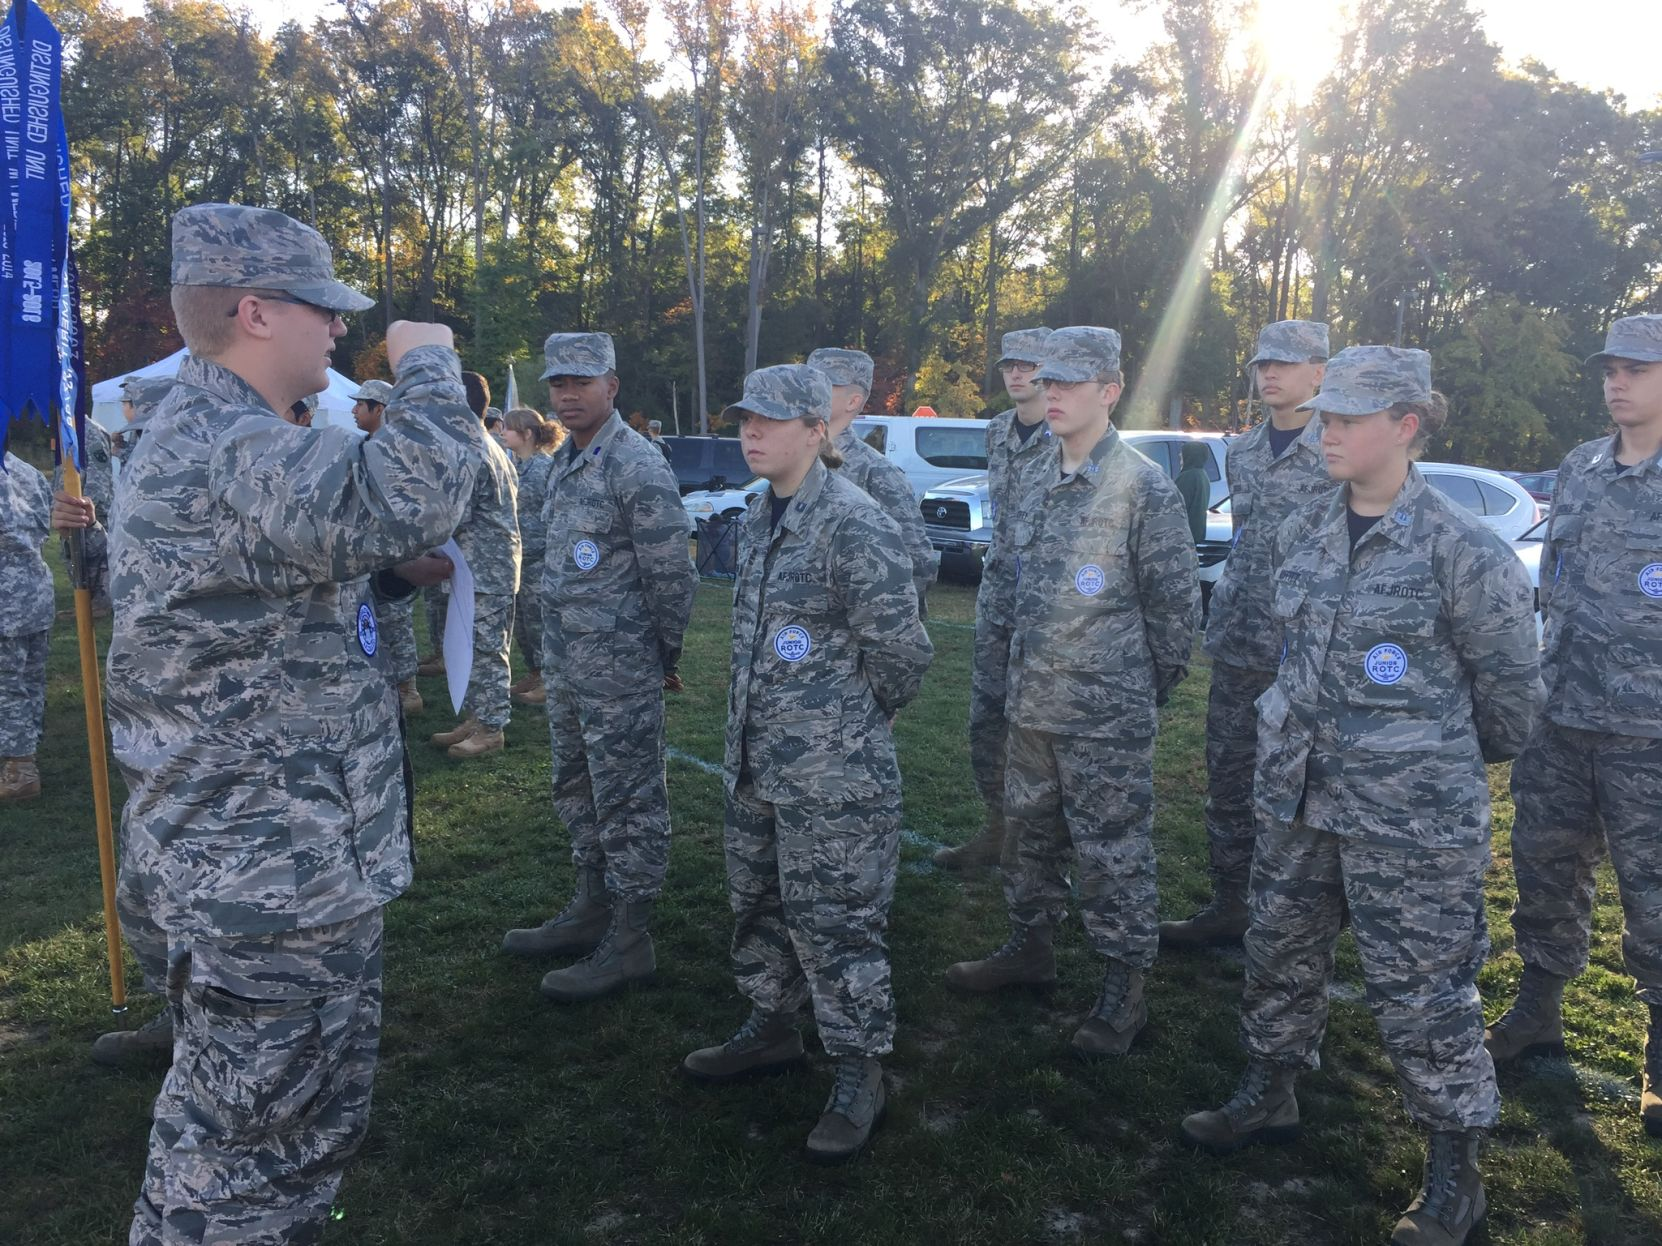 The Air Force JROTC program at Middletown High School continues to fight for their community   WDEL